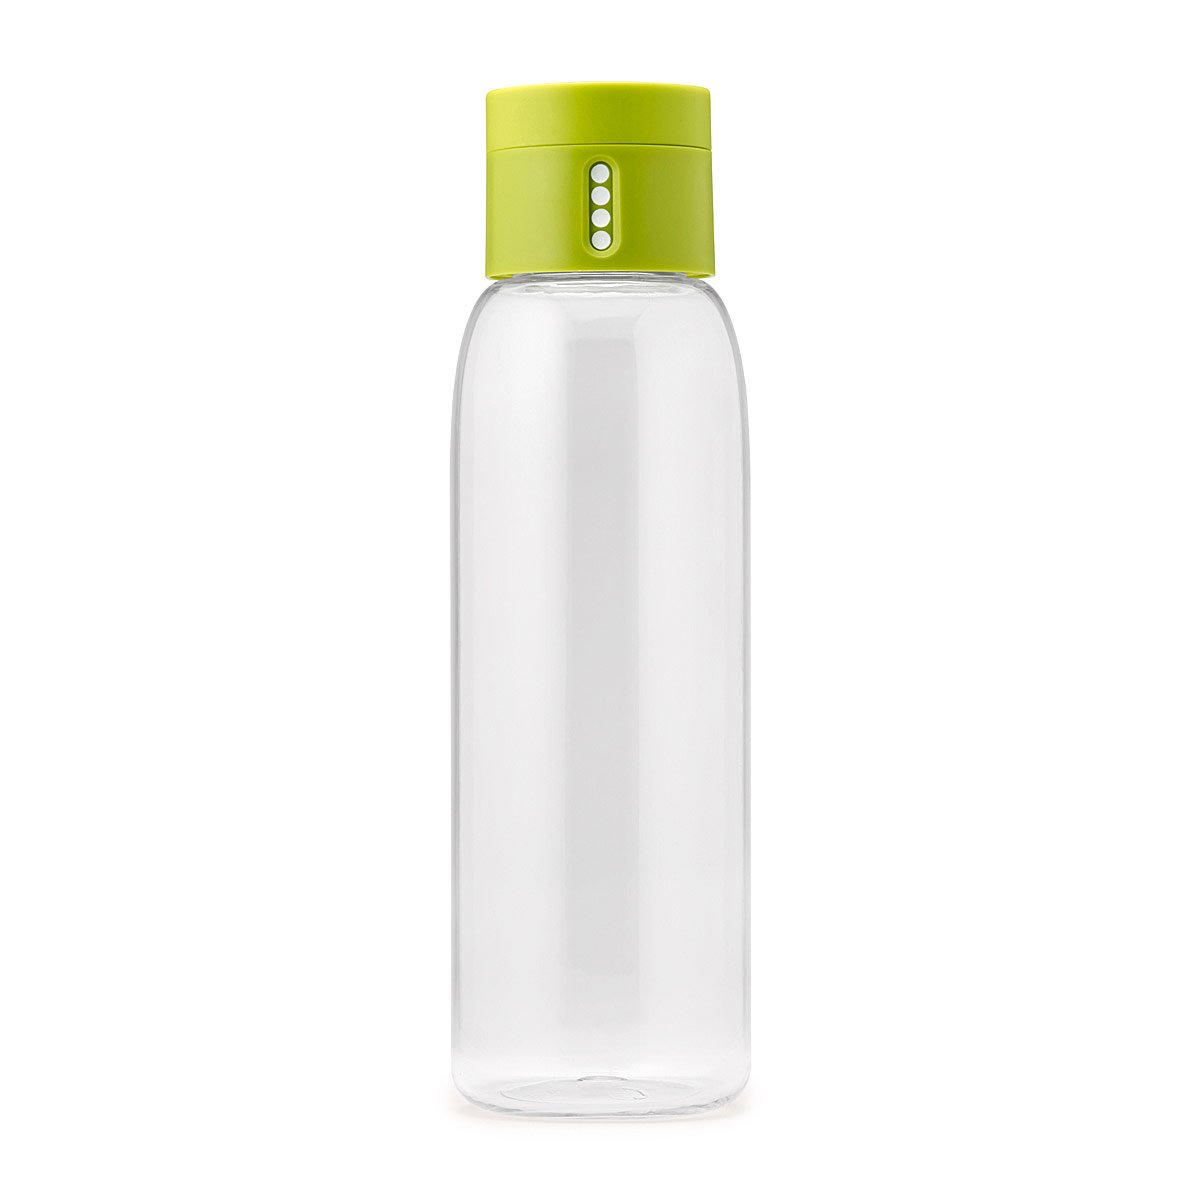 Phone Storage Workout Bottle   water bottle, cell phone holder ... on